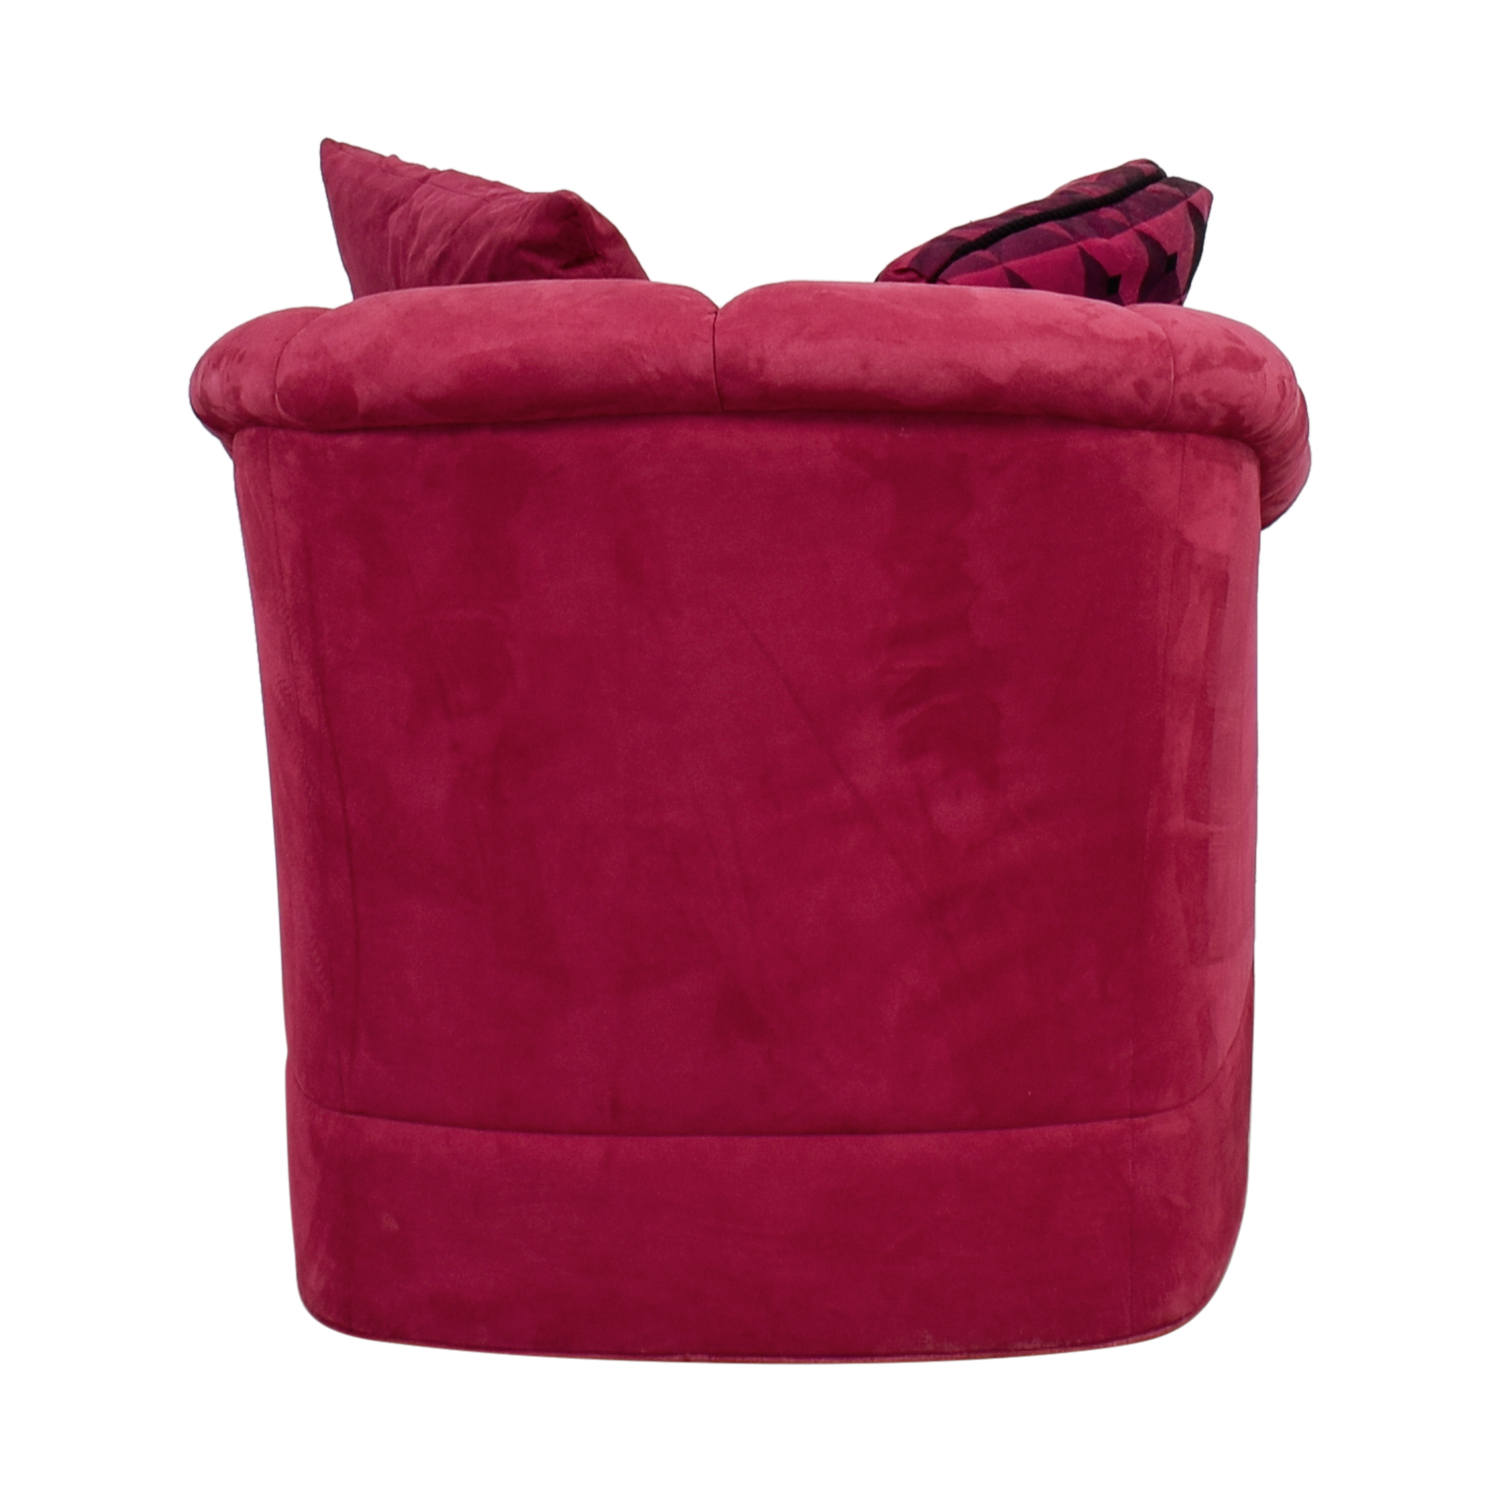 Magenta Curved Arm Accent Chair with Pillows pink